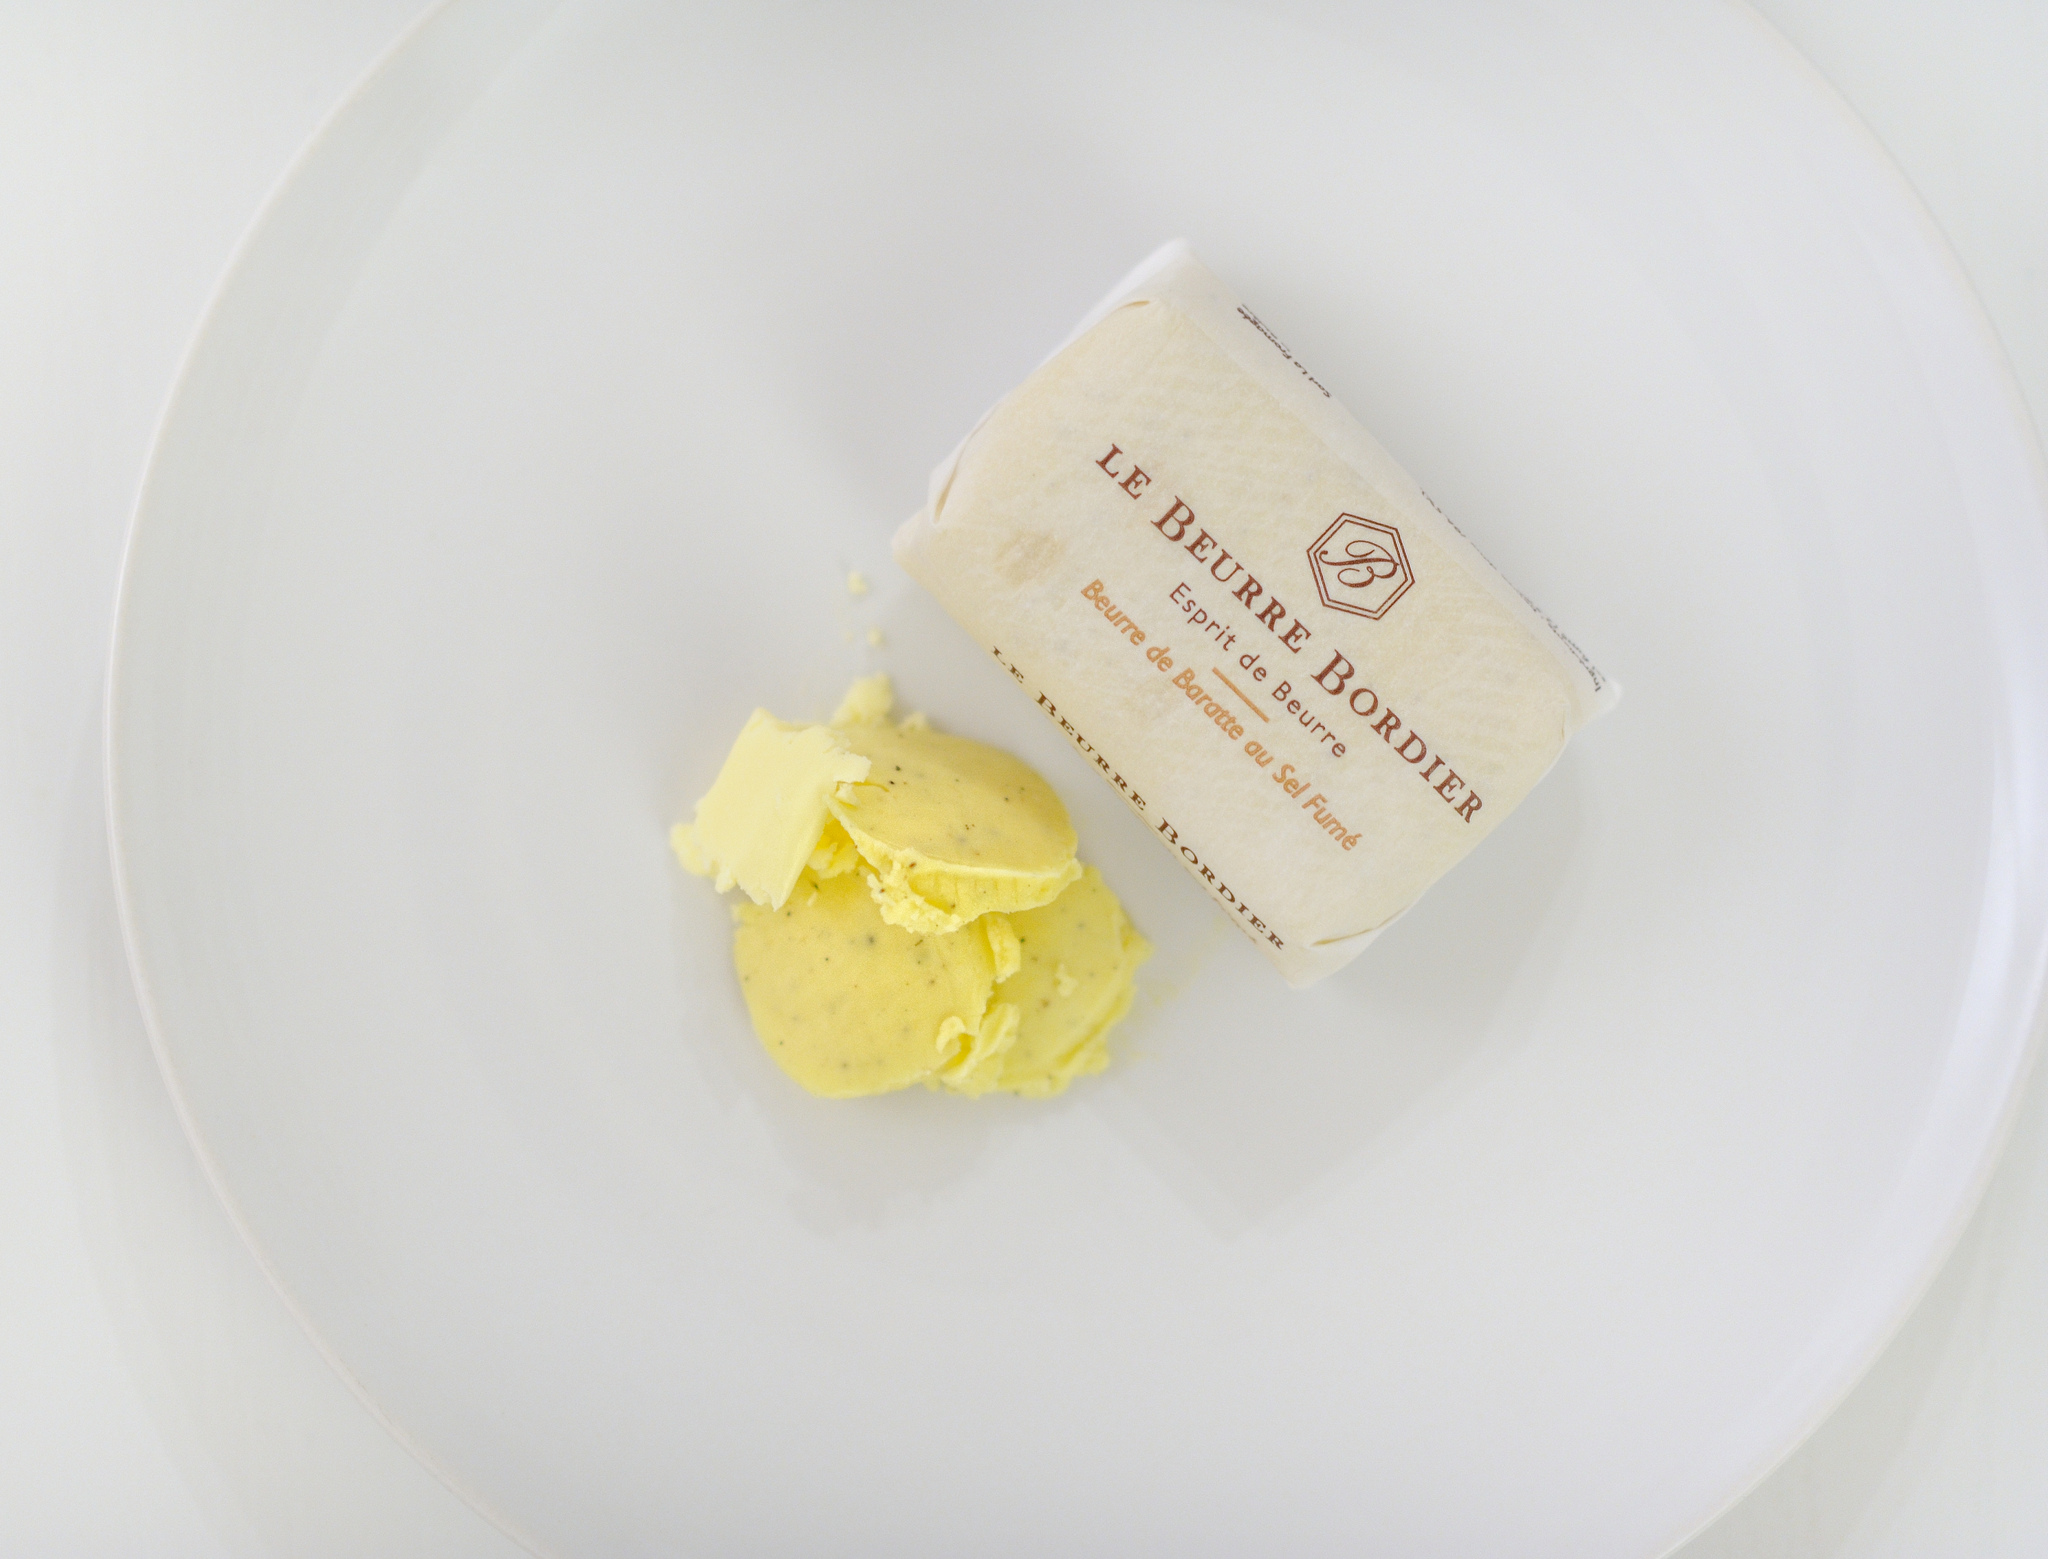 Le Beurre: Why Butter is Better in France